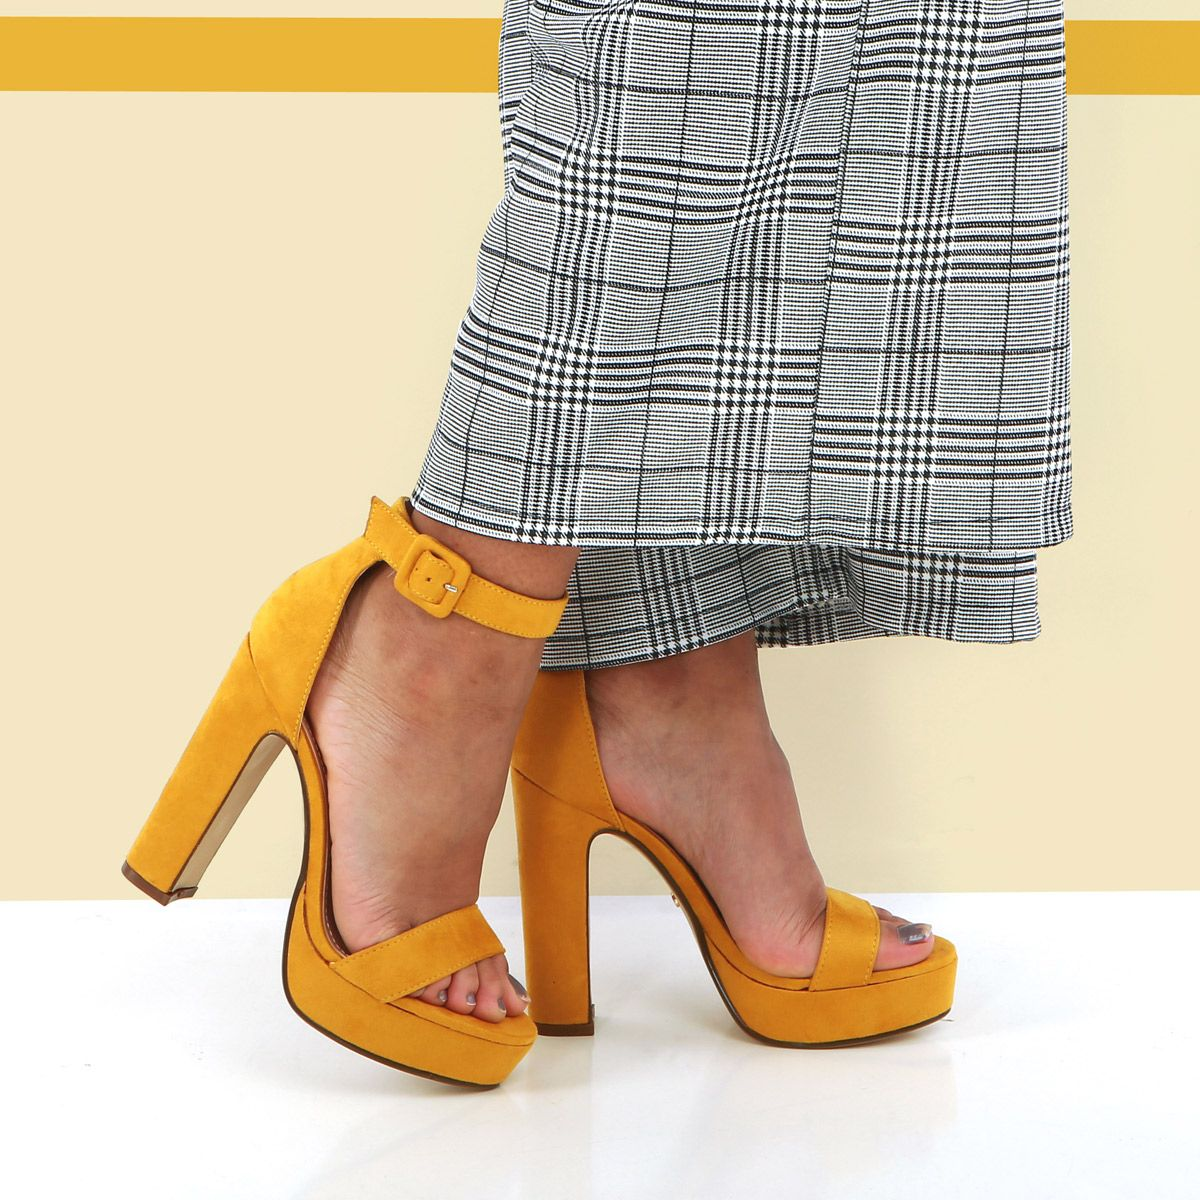 premium selection 0666a 71bcd Sandales jaune moutarde à talon haut  sandales  jaune  talons  highheels   fashion  mode  shoes  femme  chaussures  tendance  fashioninspiration